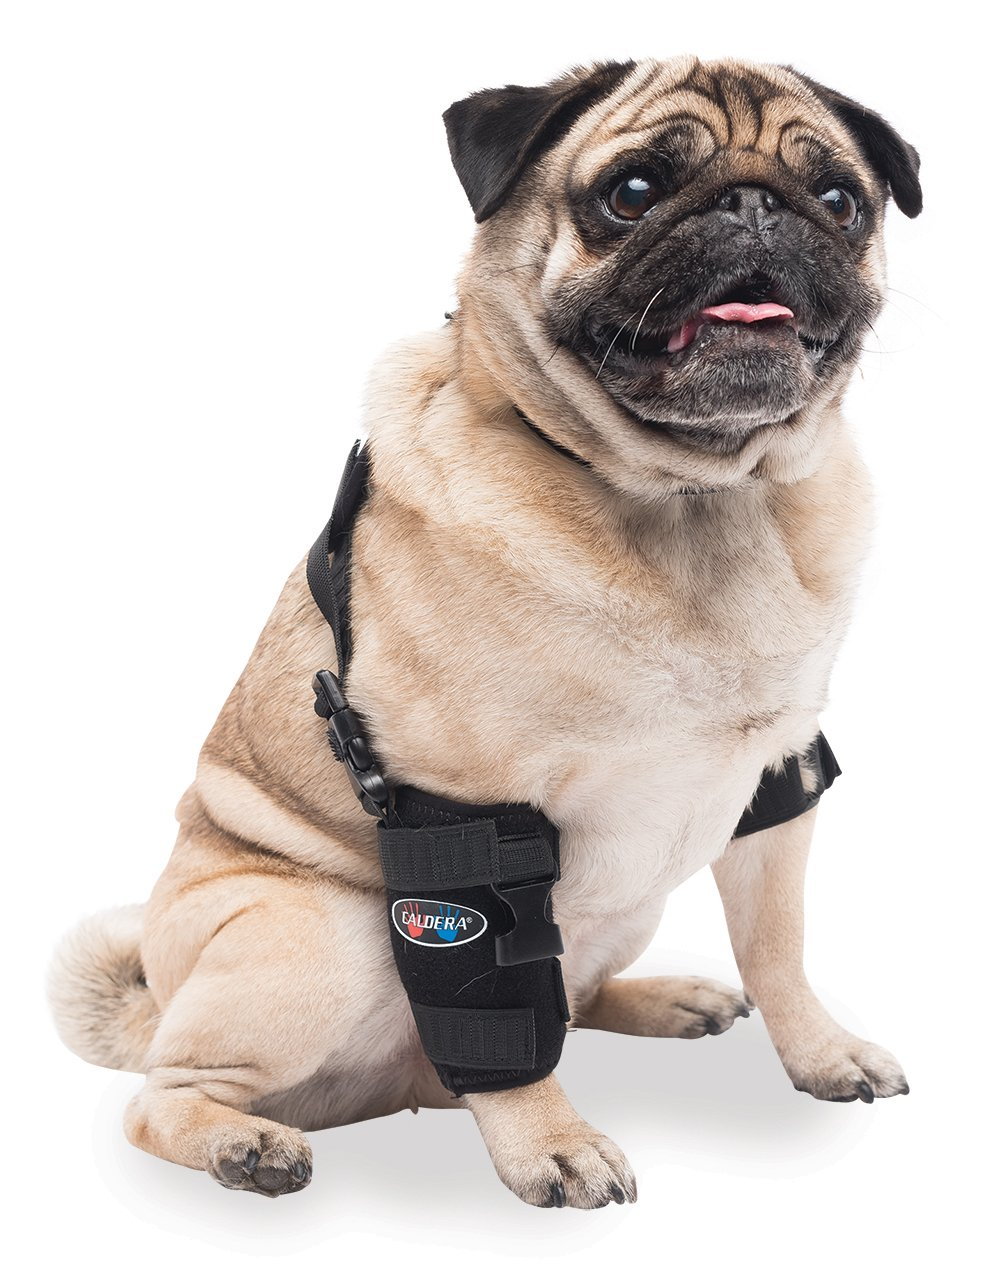 Caldera Pet Therapy Universal Wrap Carpal/Elbow with Gel, Small, Black